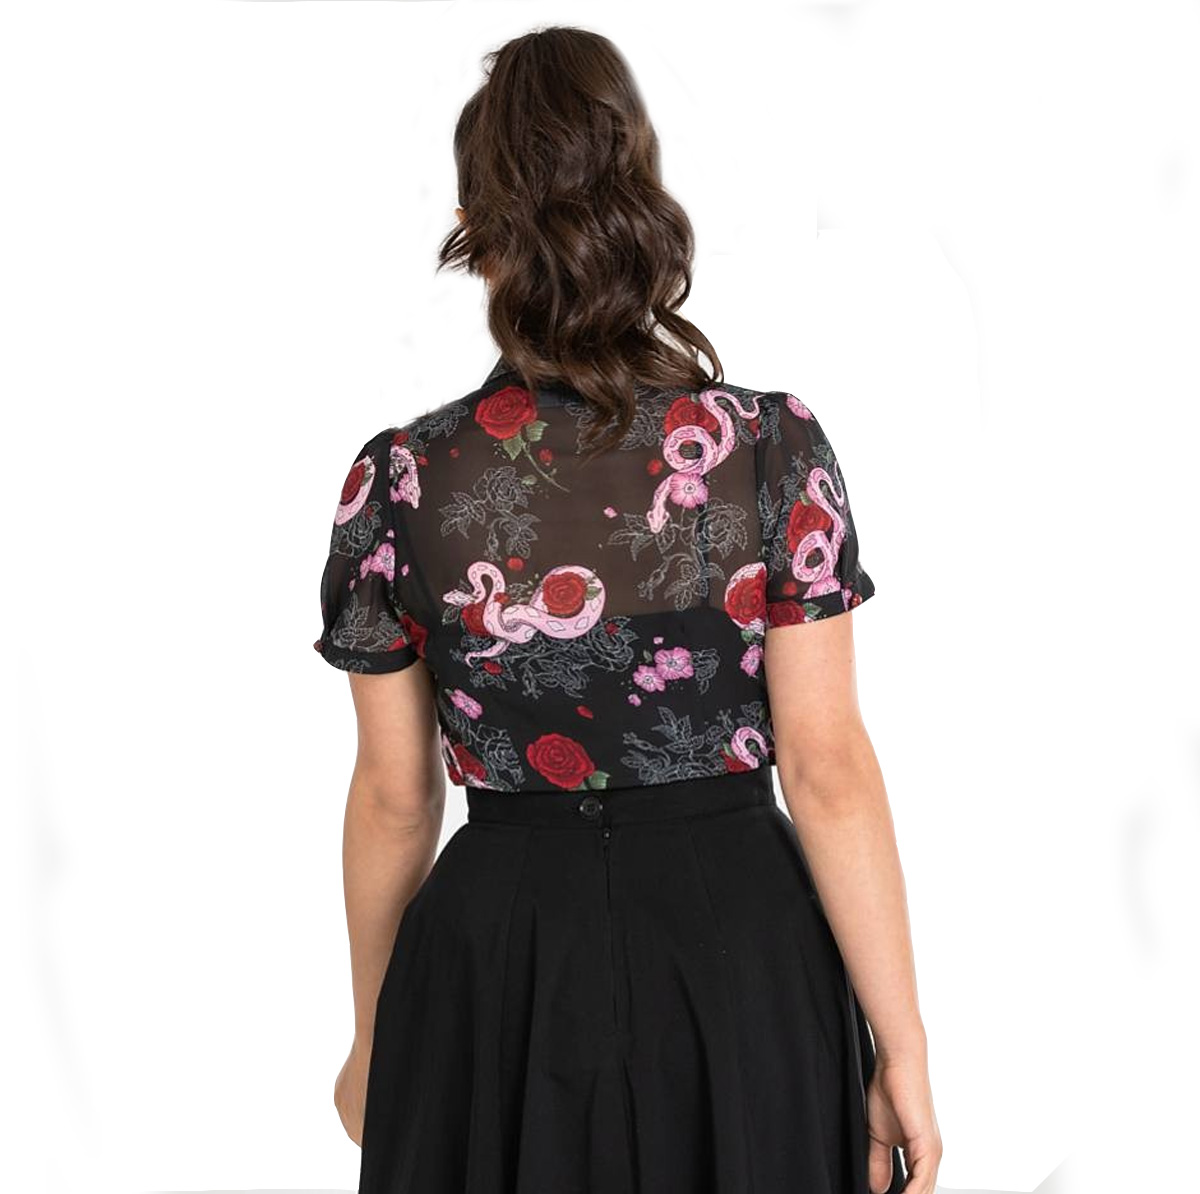 Hell Bunny Shirt Gothic Black Top MEDUSA Blouse Snakes /& Roses All Sizes